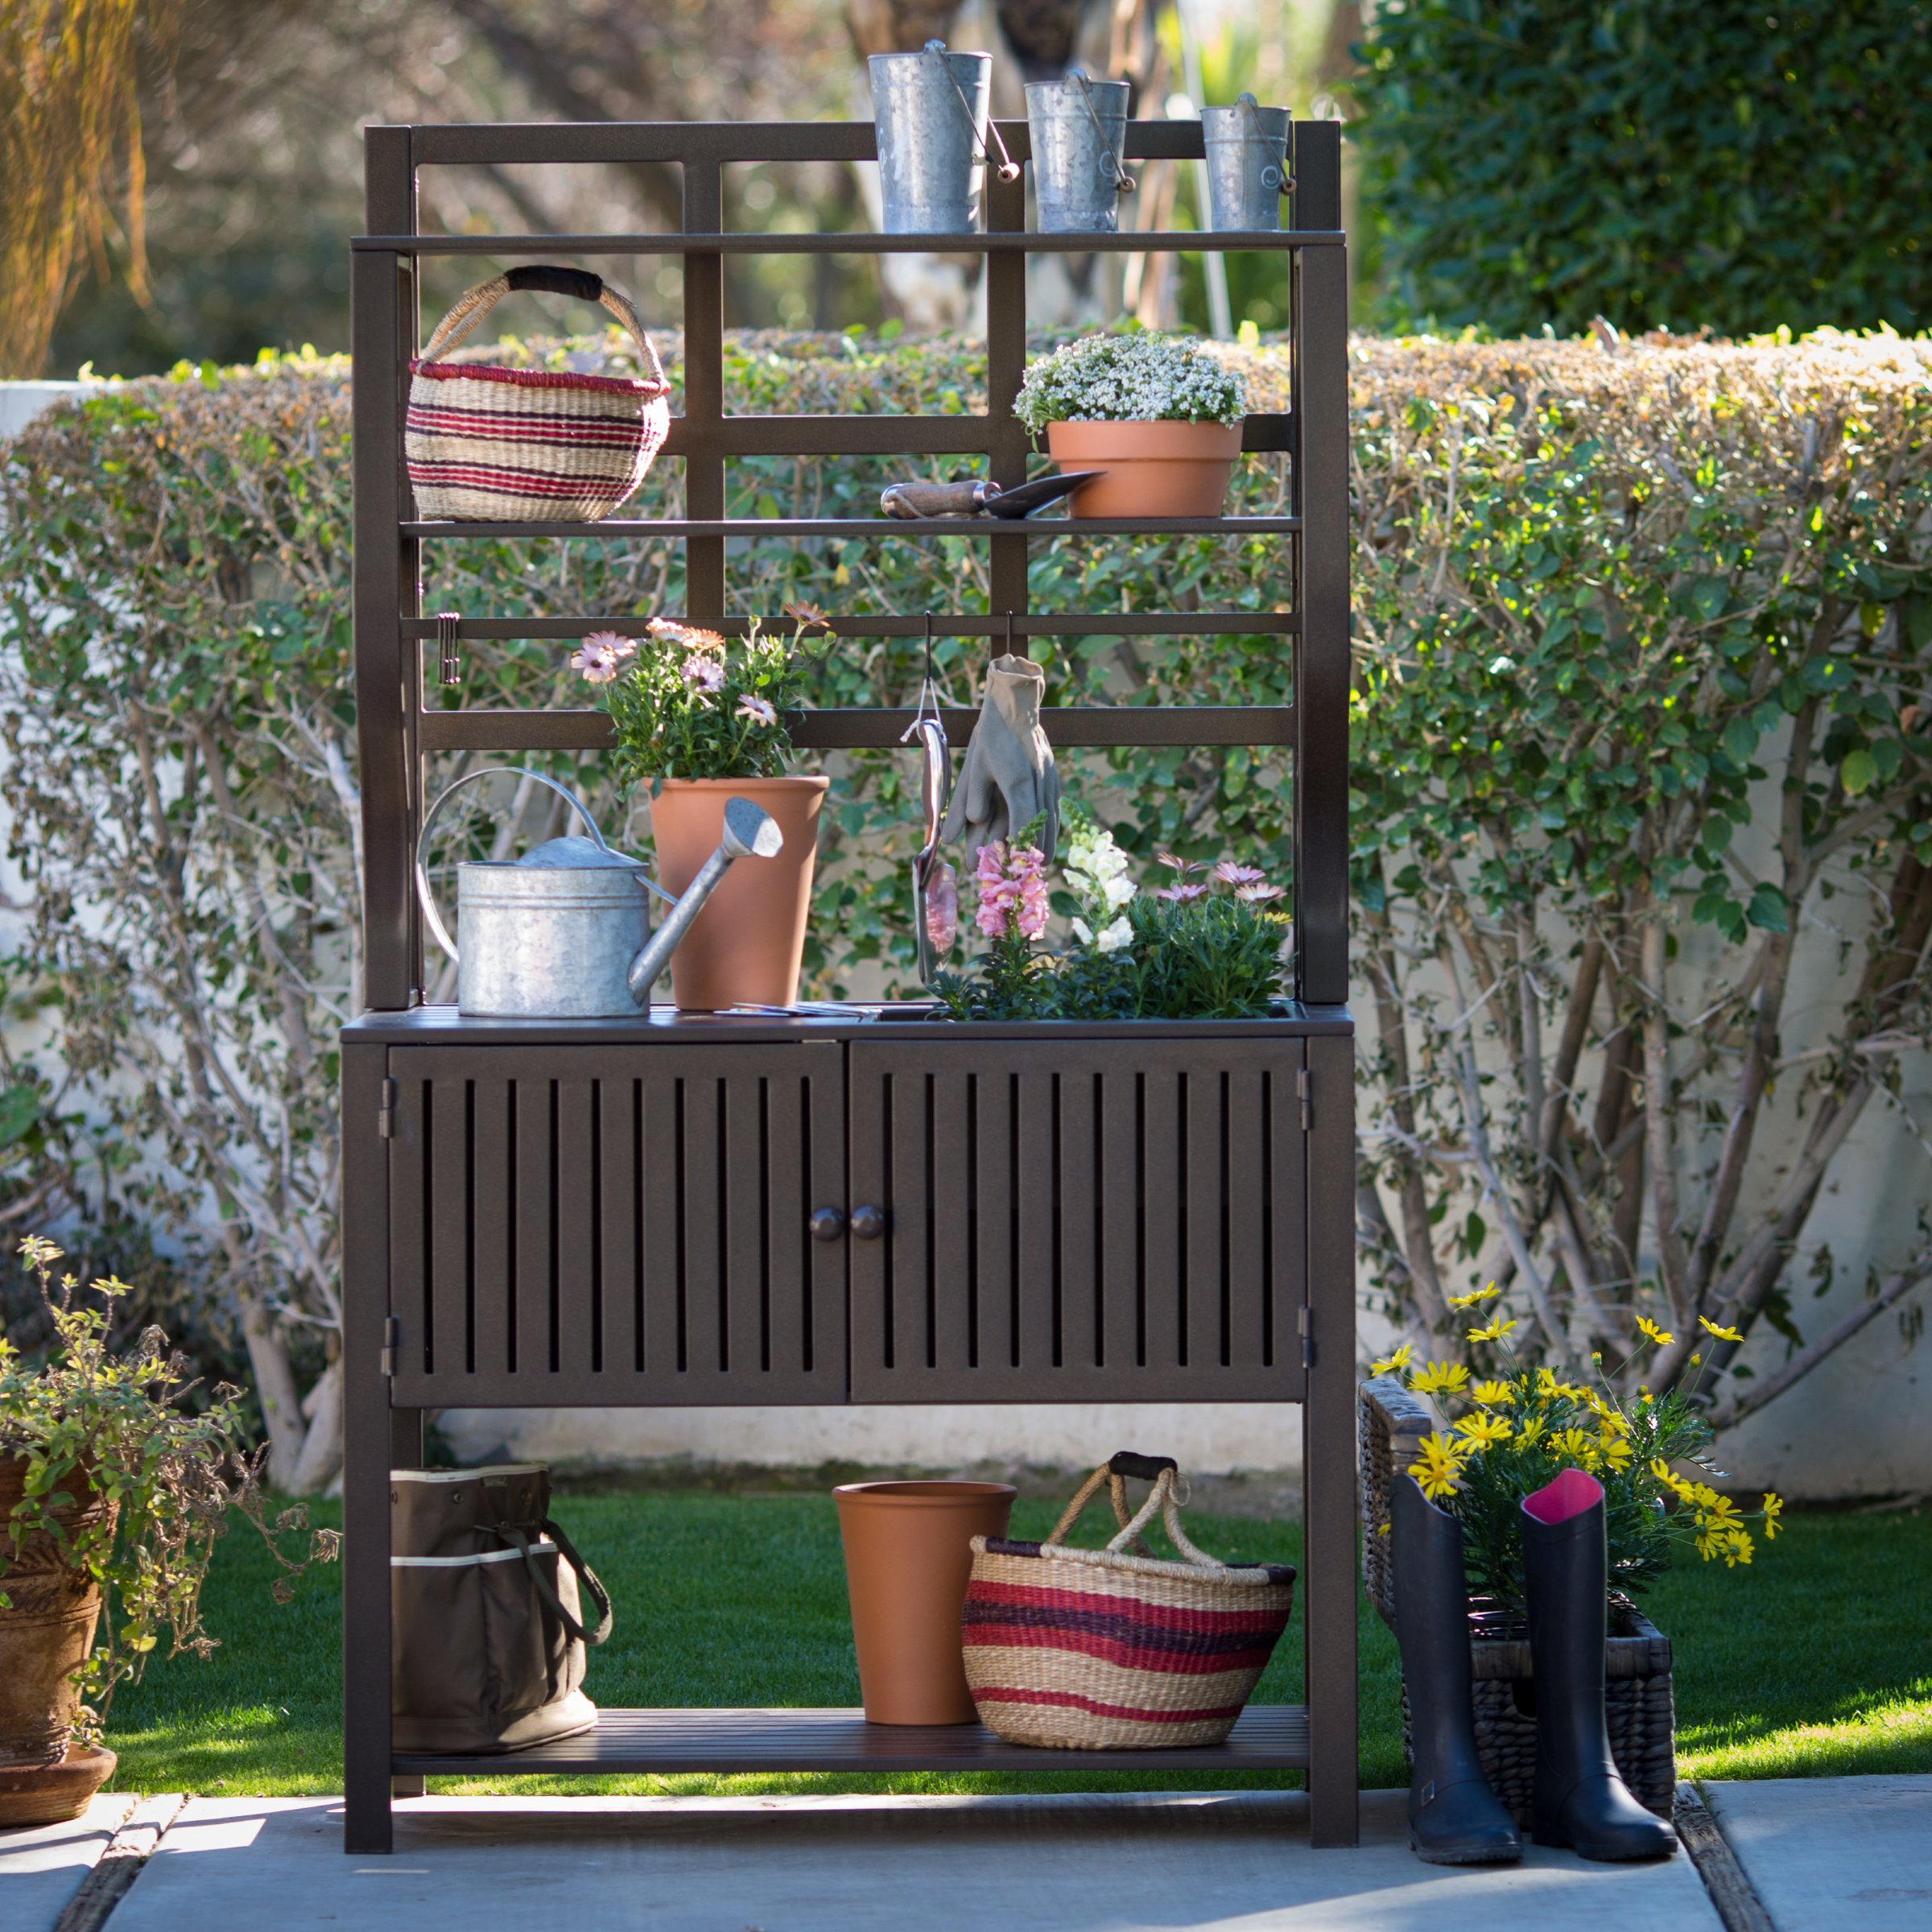 Contemporary Style, Modern Metal Chestnut Brown Finish Outdoor Potting Bench 42''W x 23''D x 72''H With Storage and 2 Slatted Shelves, 7 Hooks for Hanging Gardening Tools by Belham Living (Image #5)